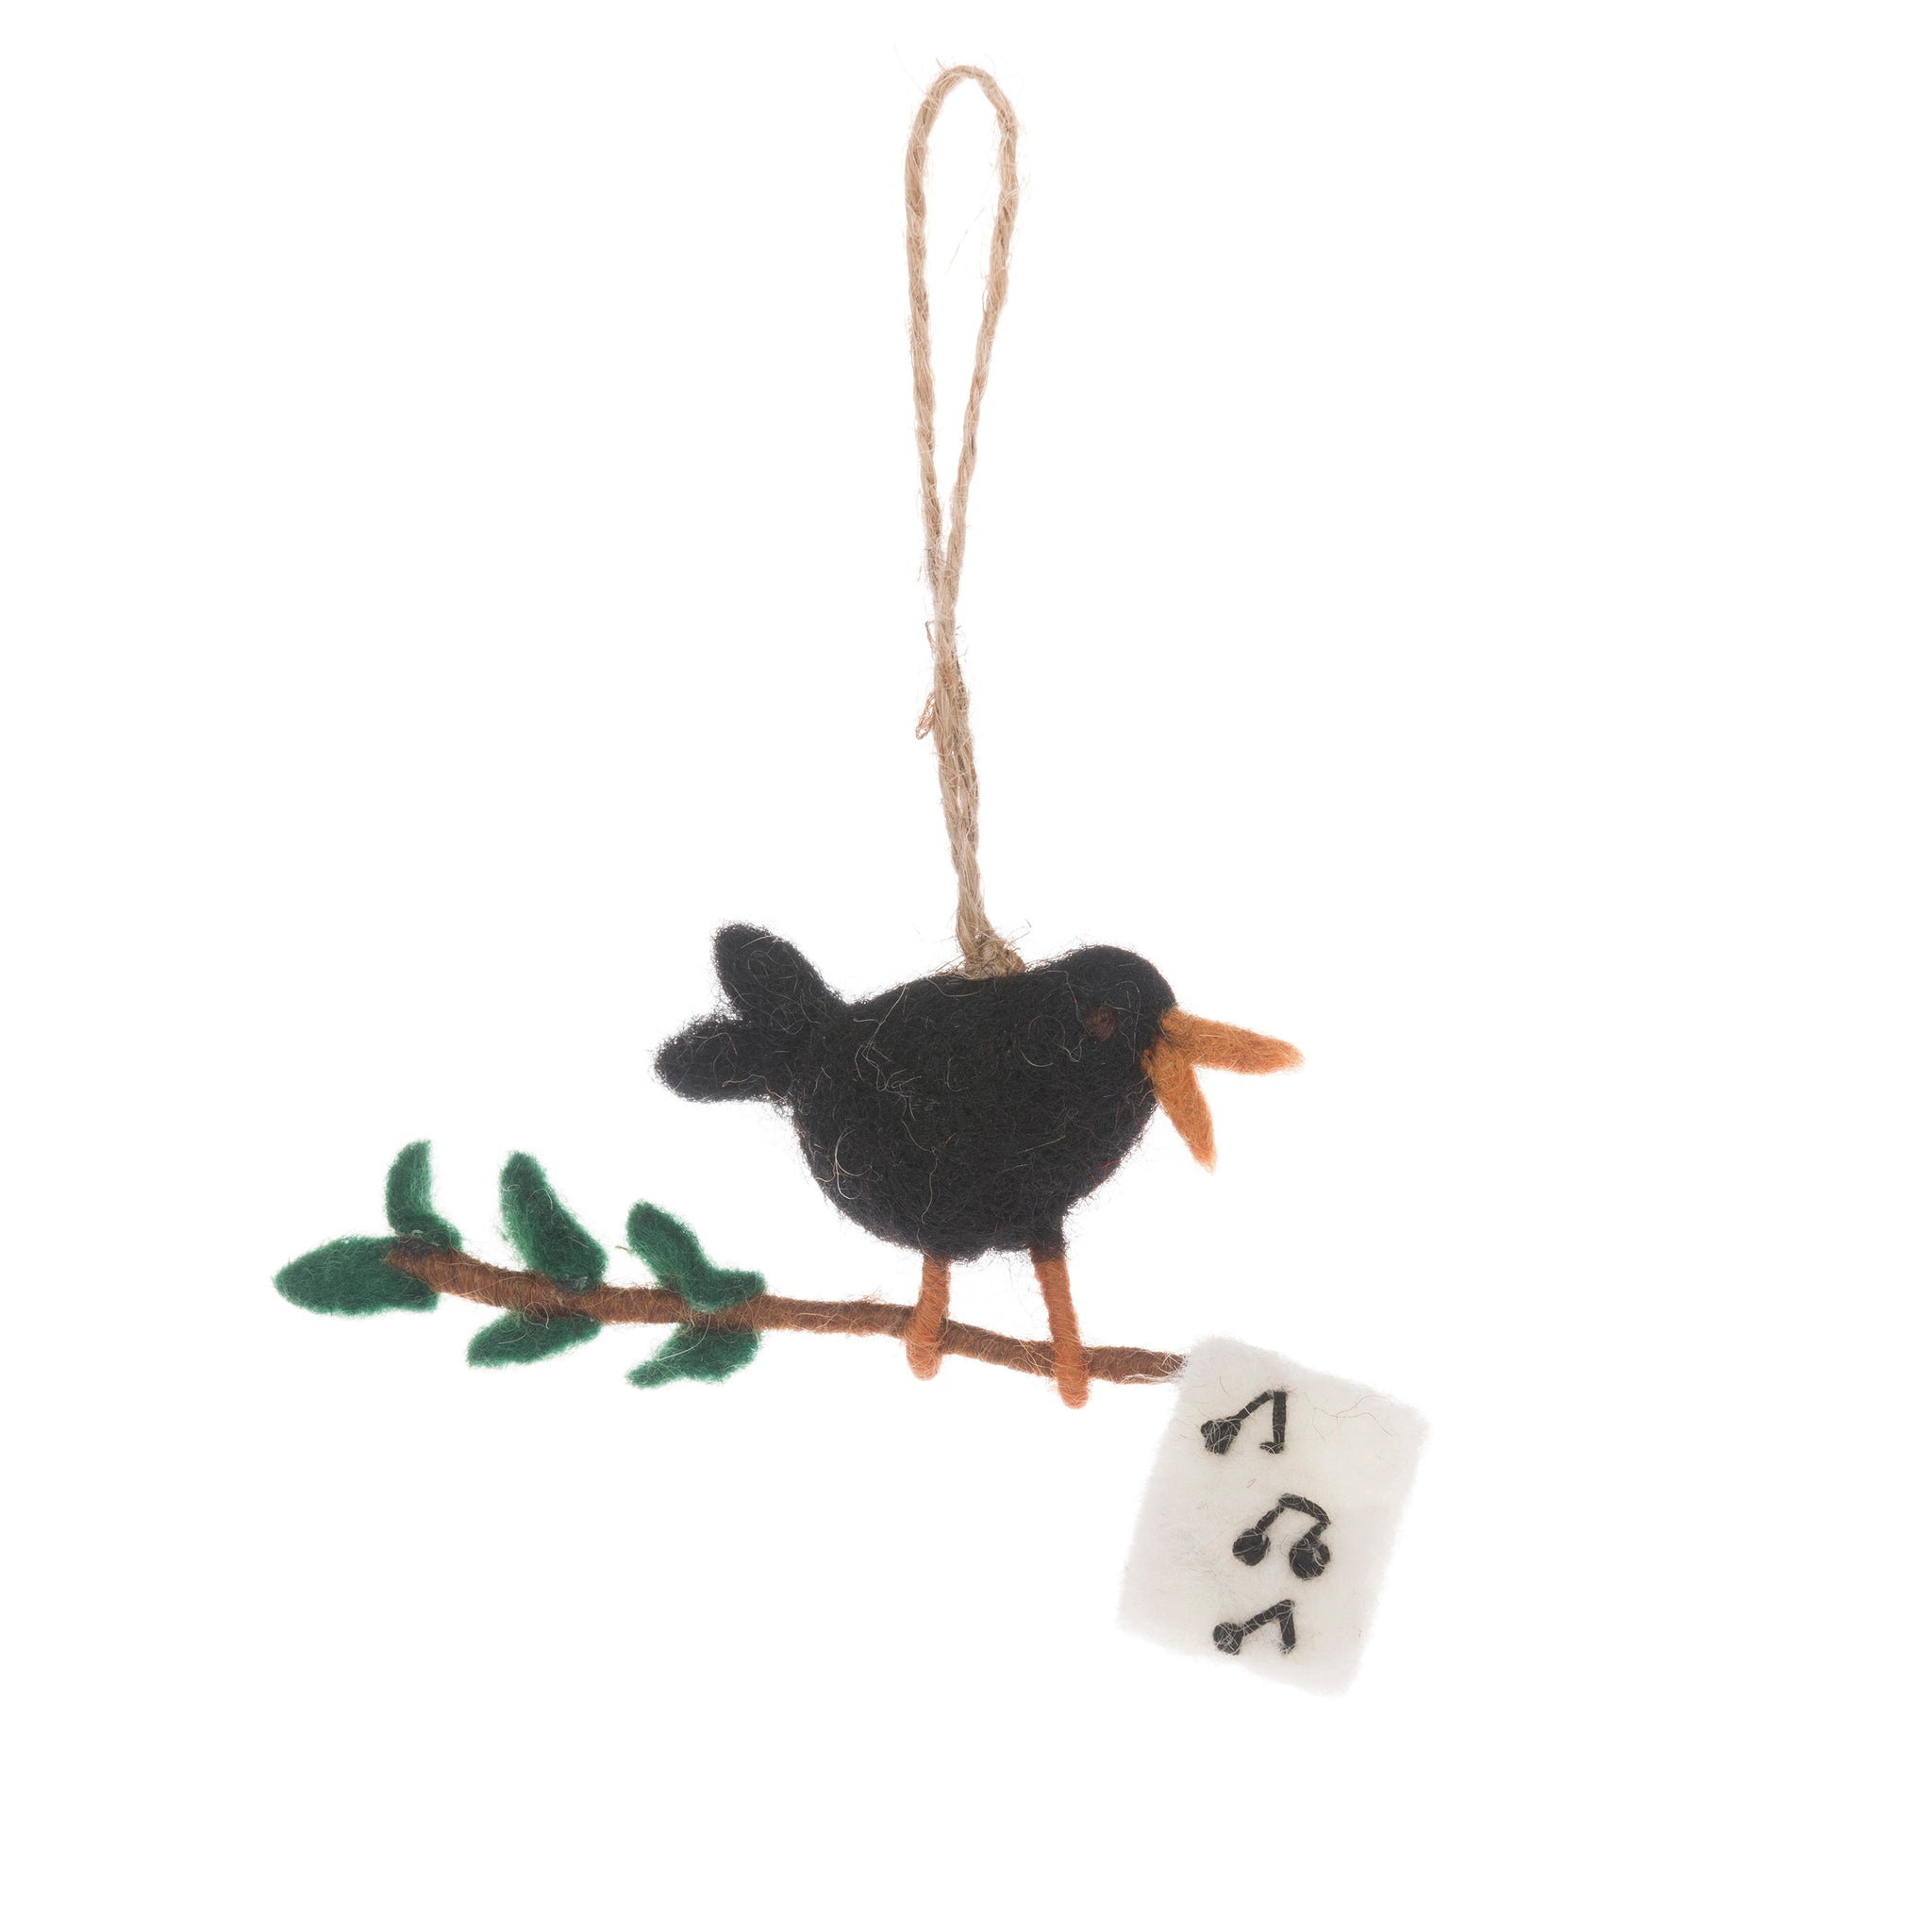 Calling Bird Felt Decoration